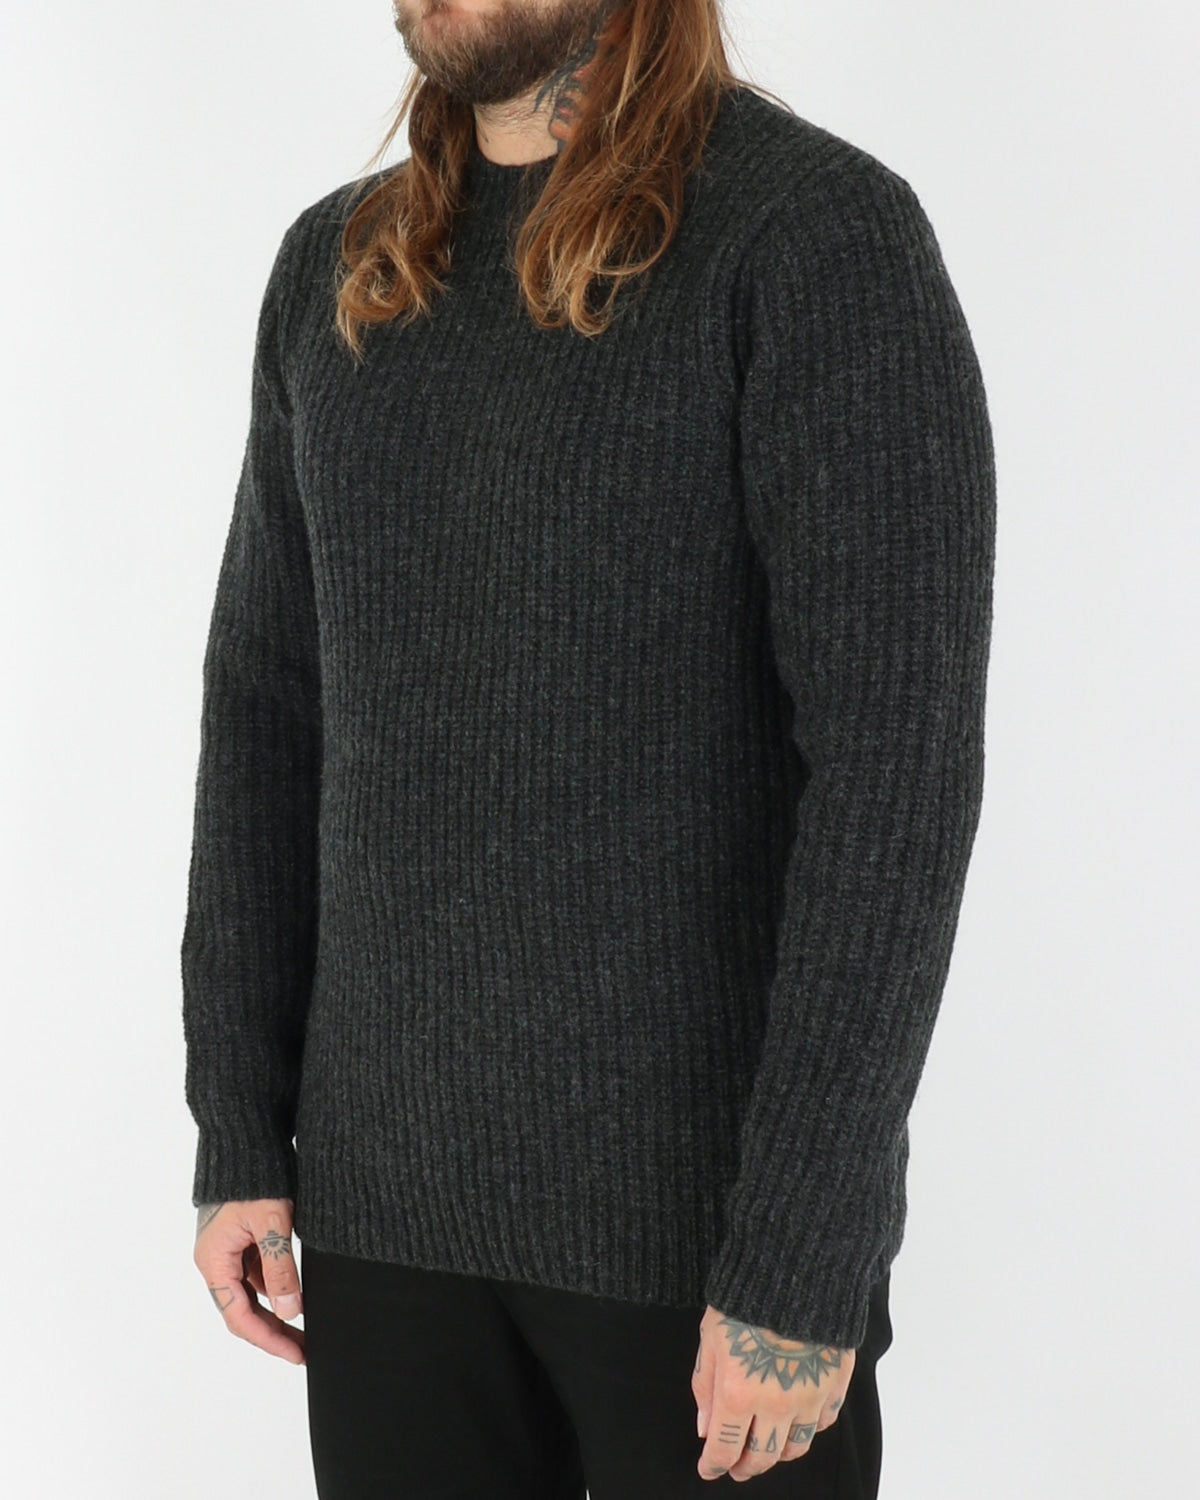 legends_lambswool knit_charcoal_3_3